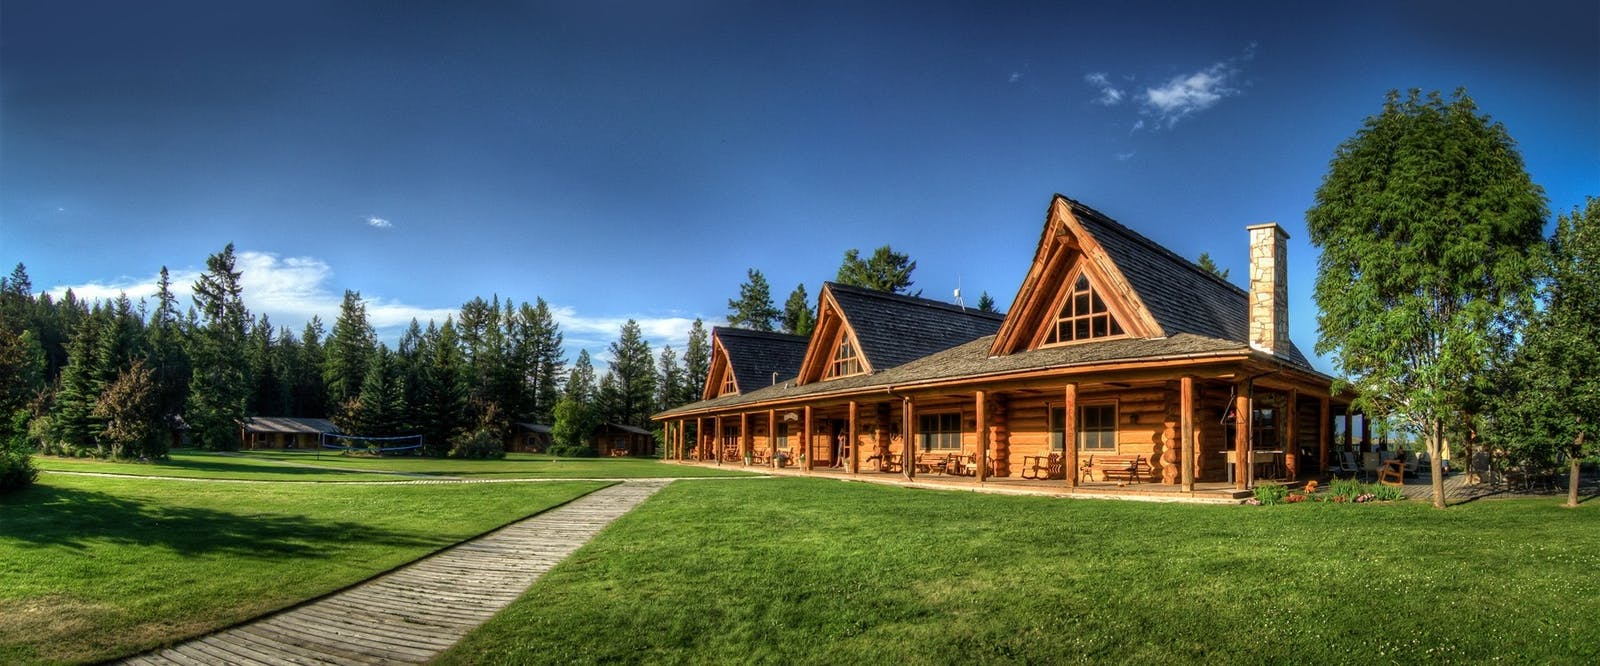 the lodge at three bars guest ranch